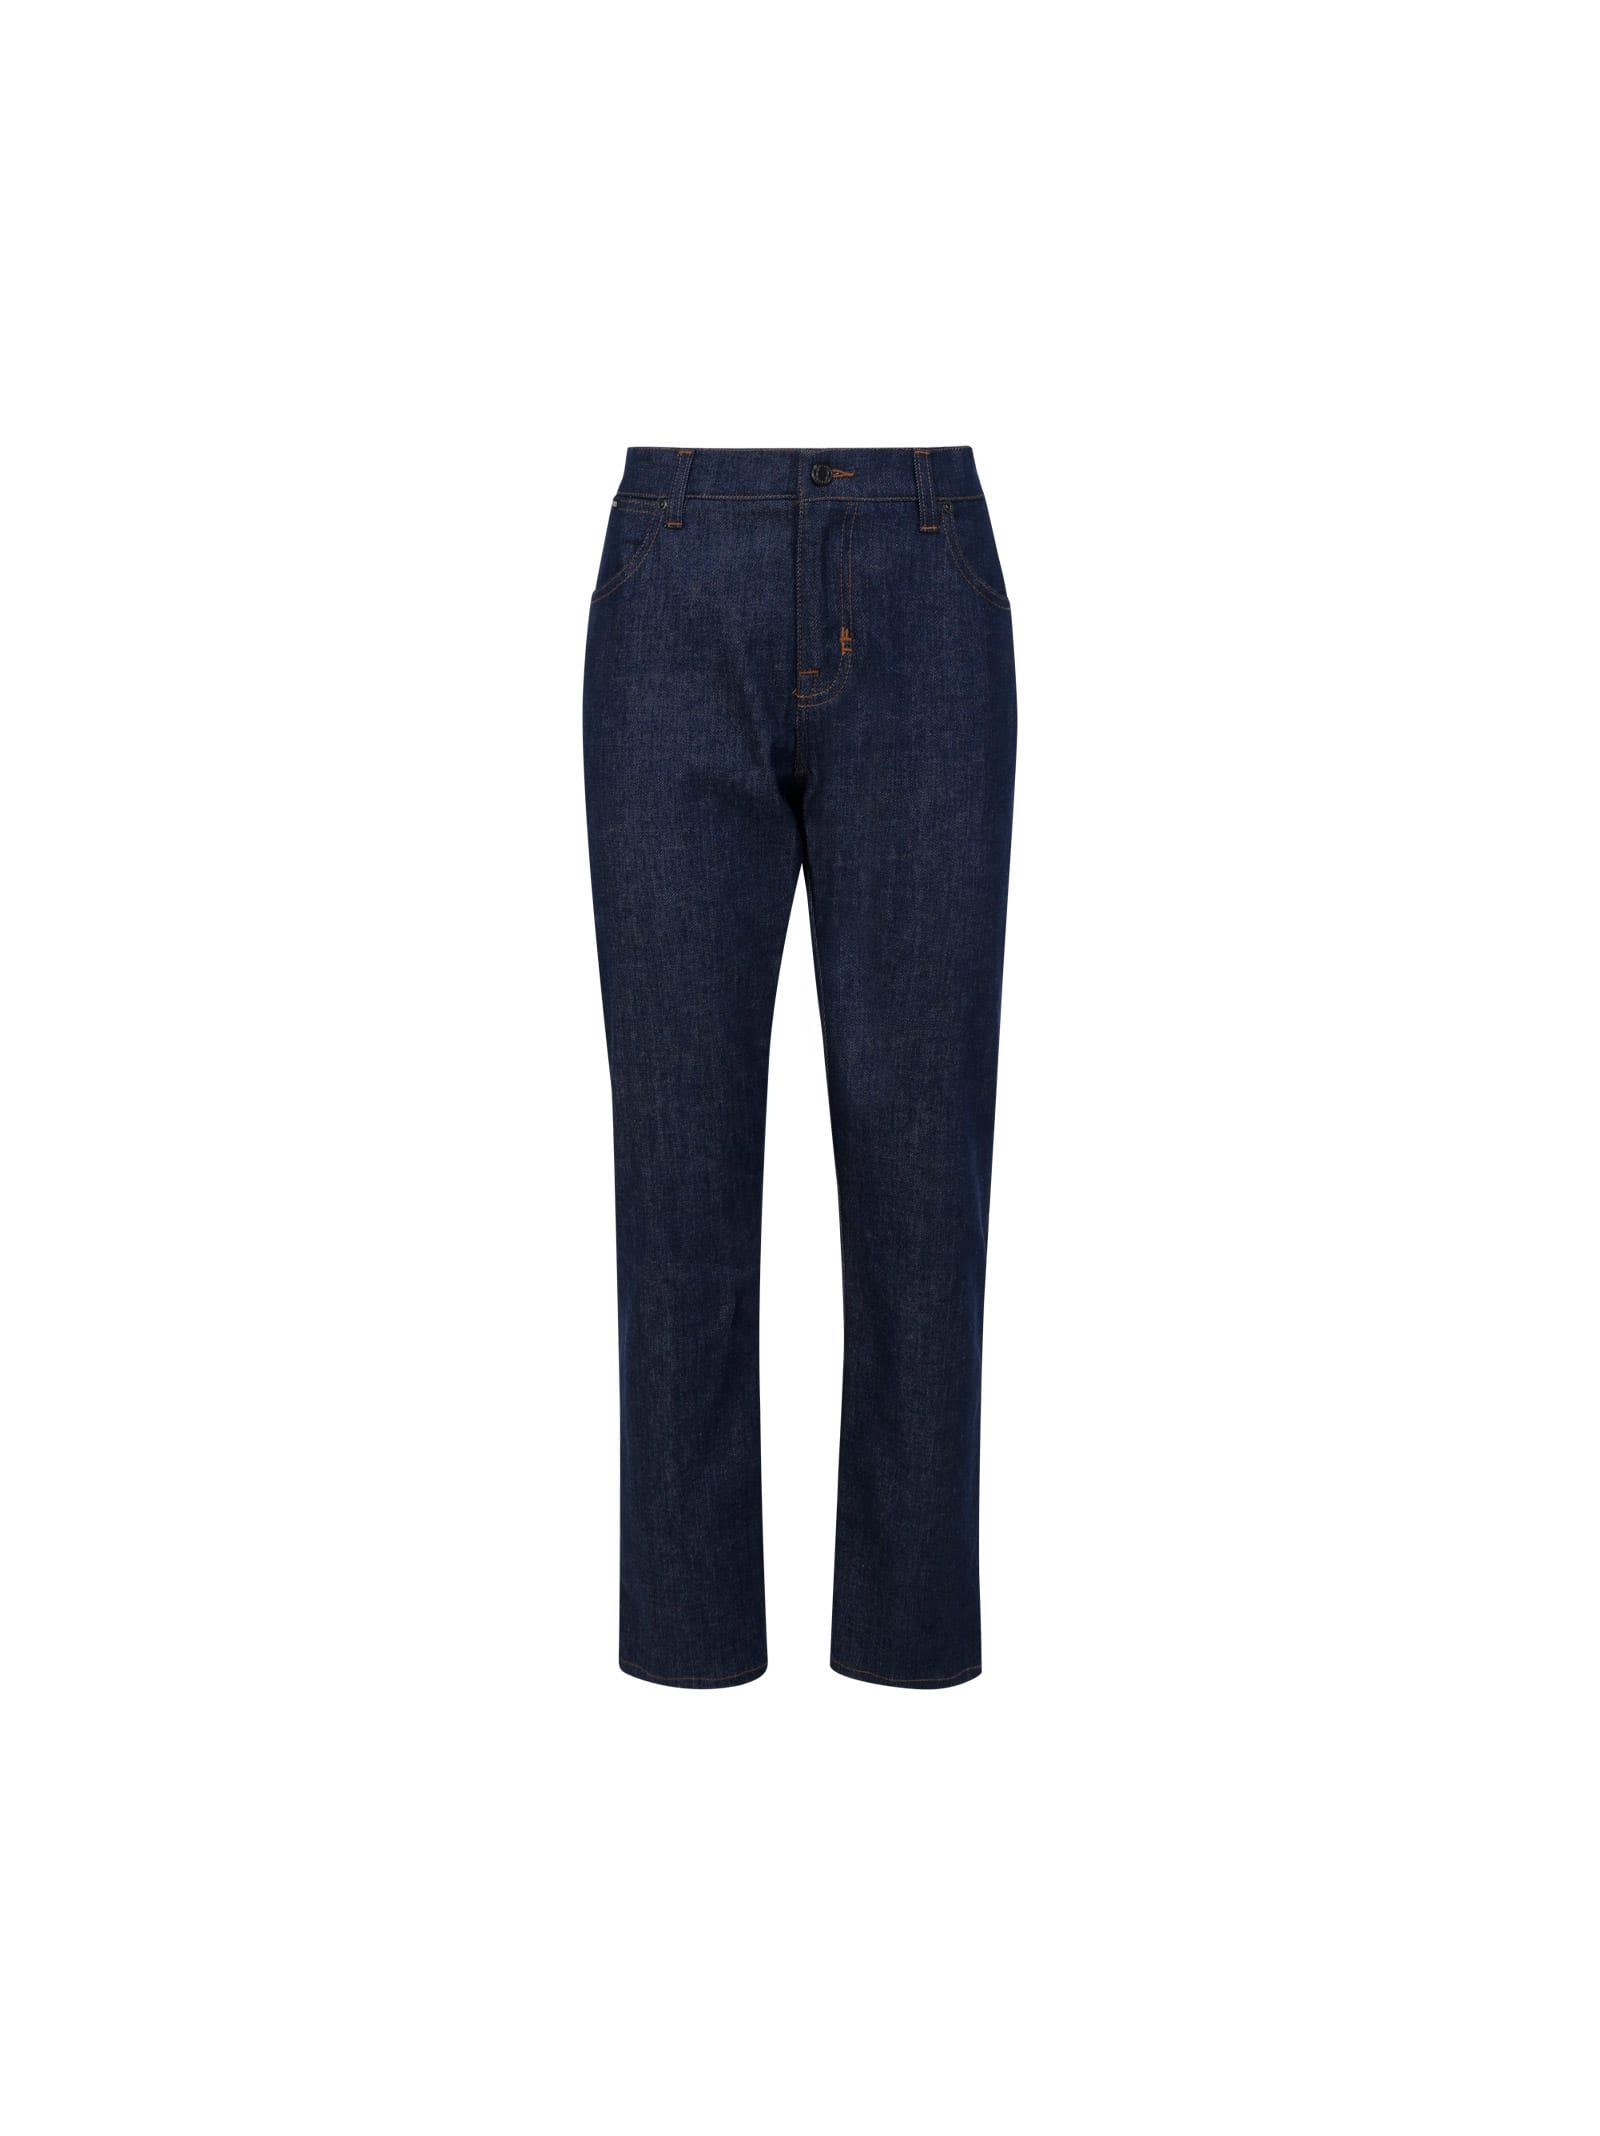 Tom Ford Cottons JEANS